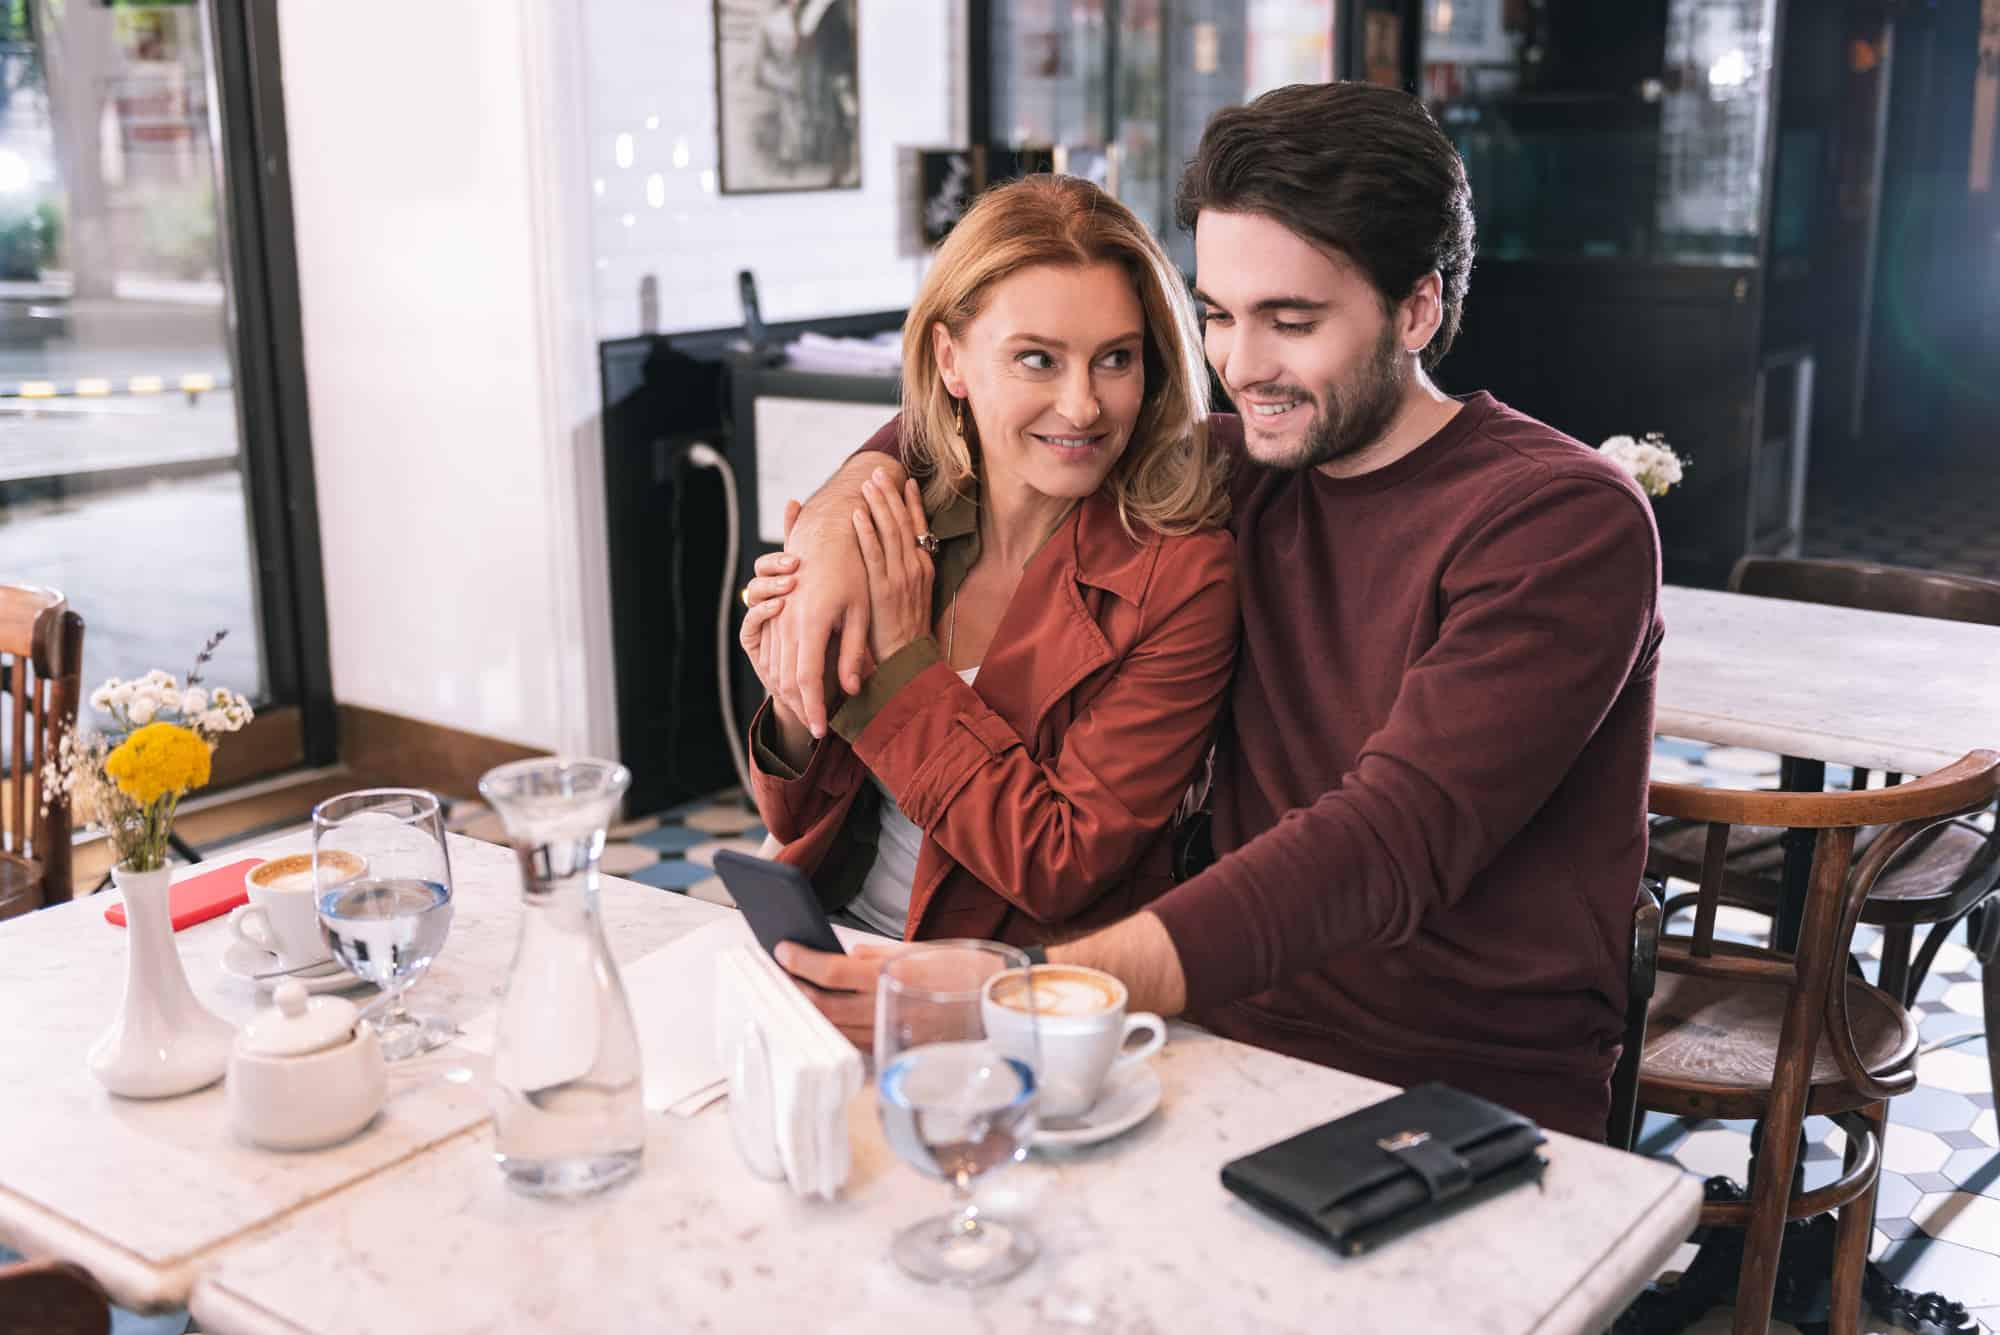 Age Gap Relationships - What Its Like (9 Ways To Bridge